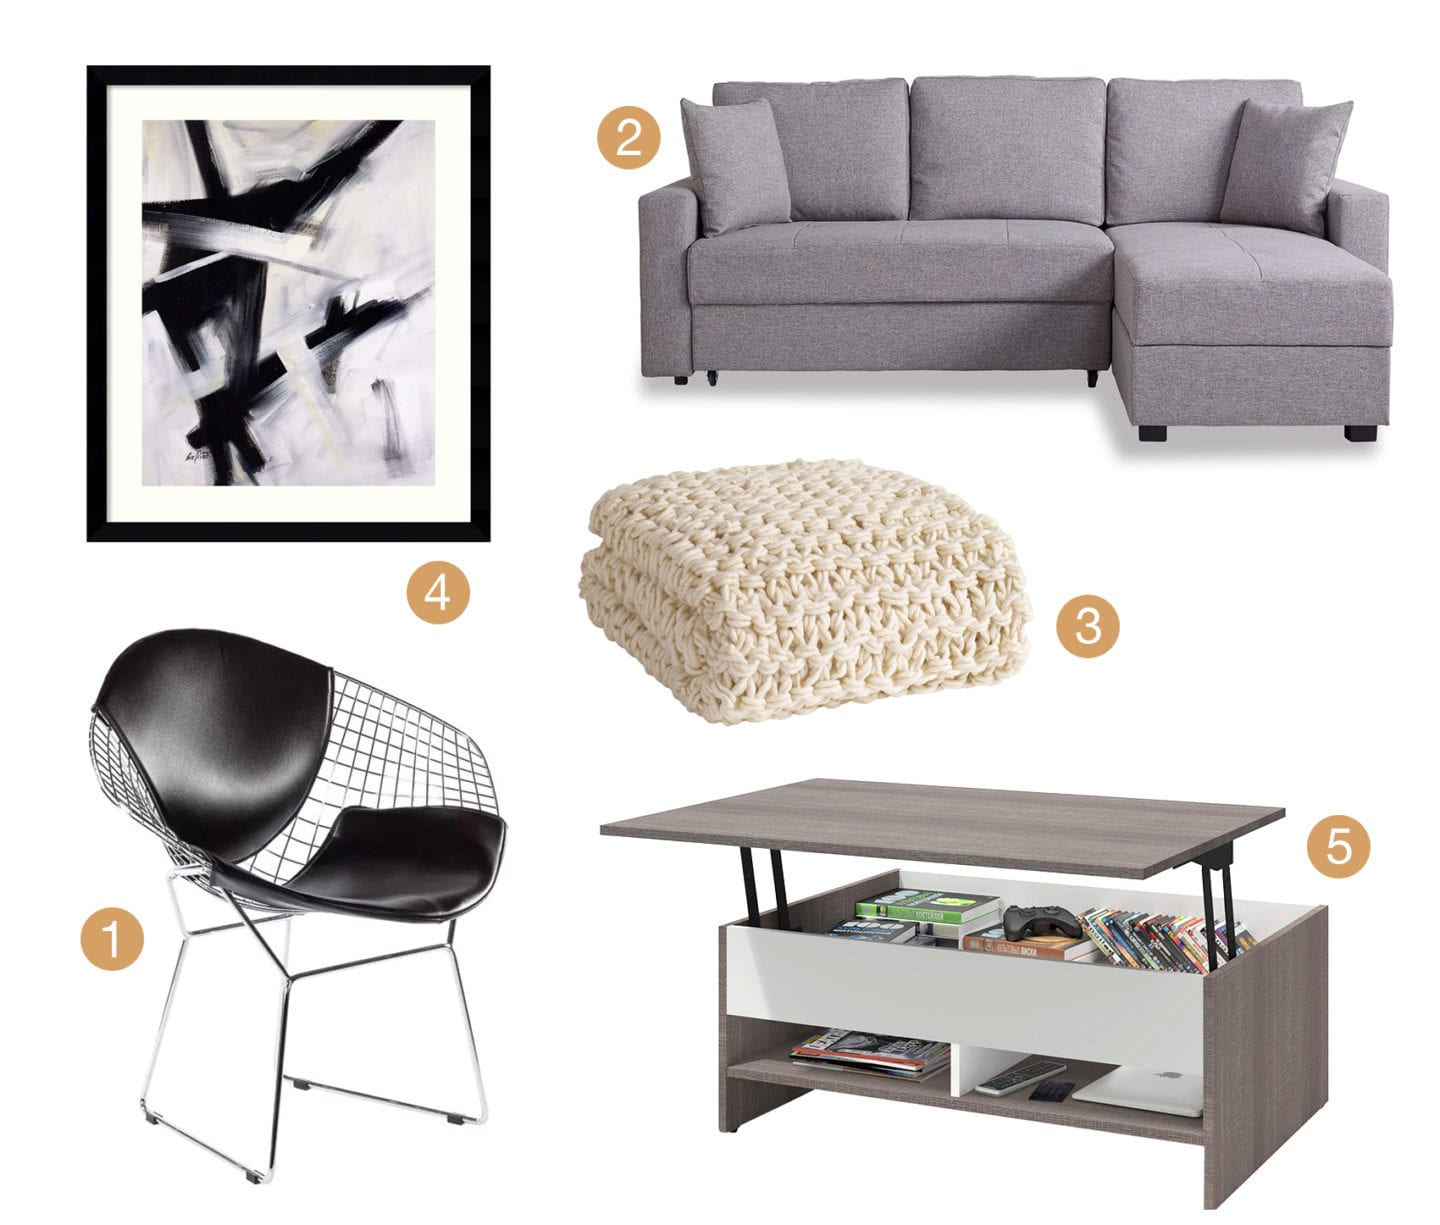 Collage of Minimalist style living room furniture and decor.